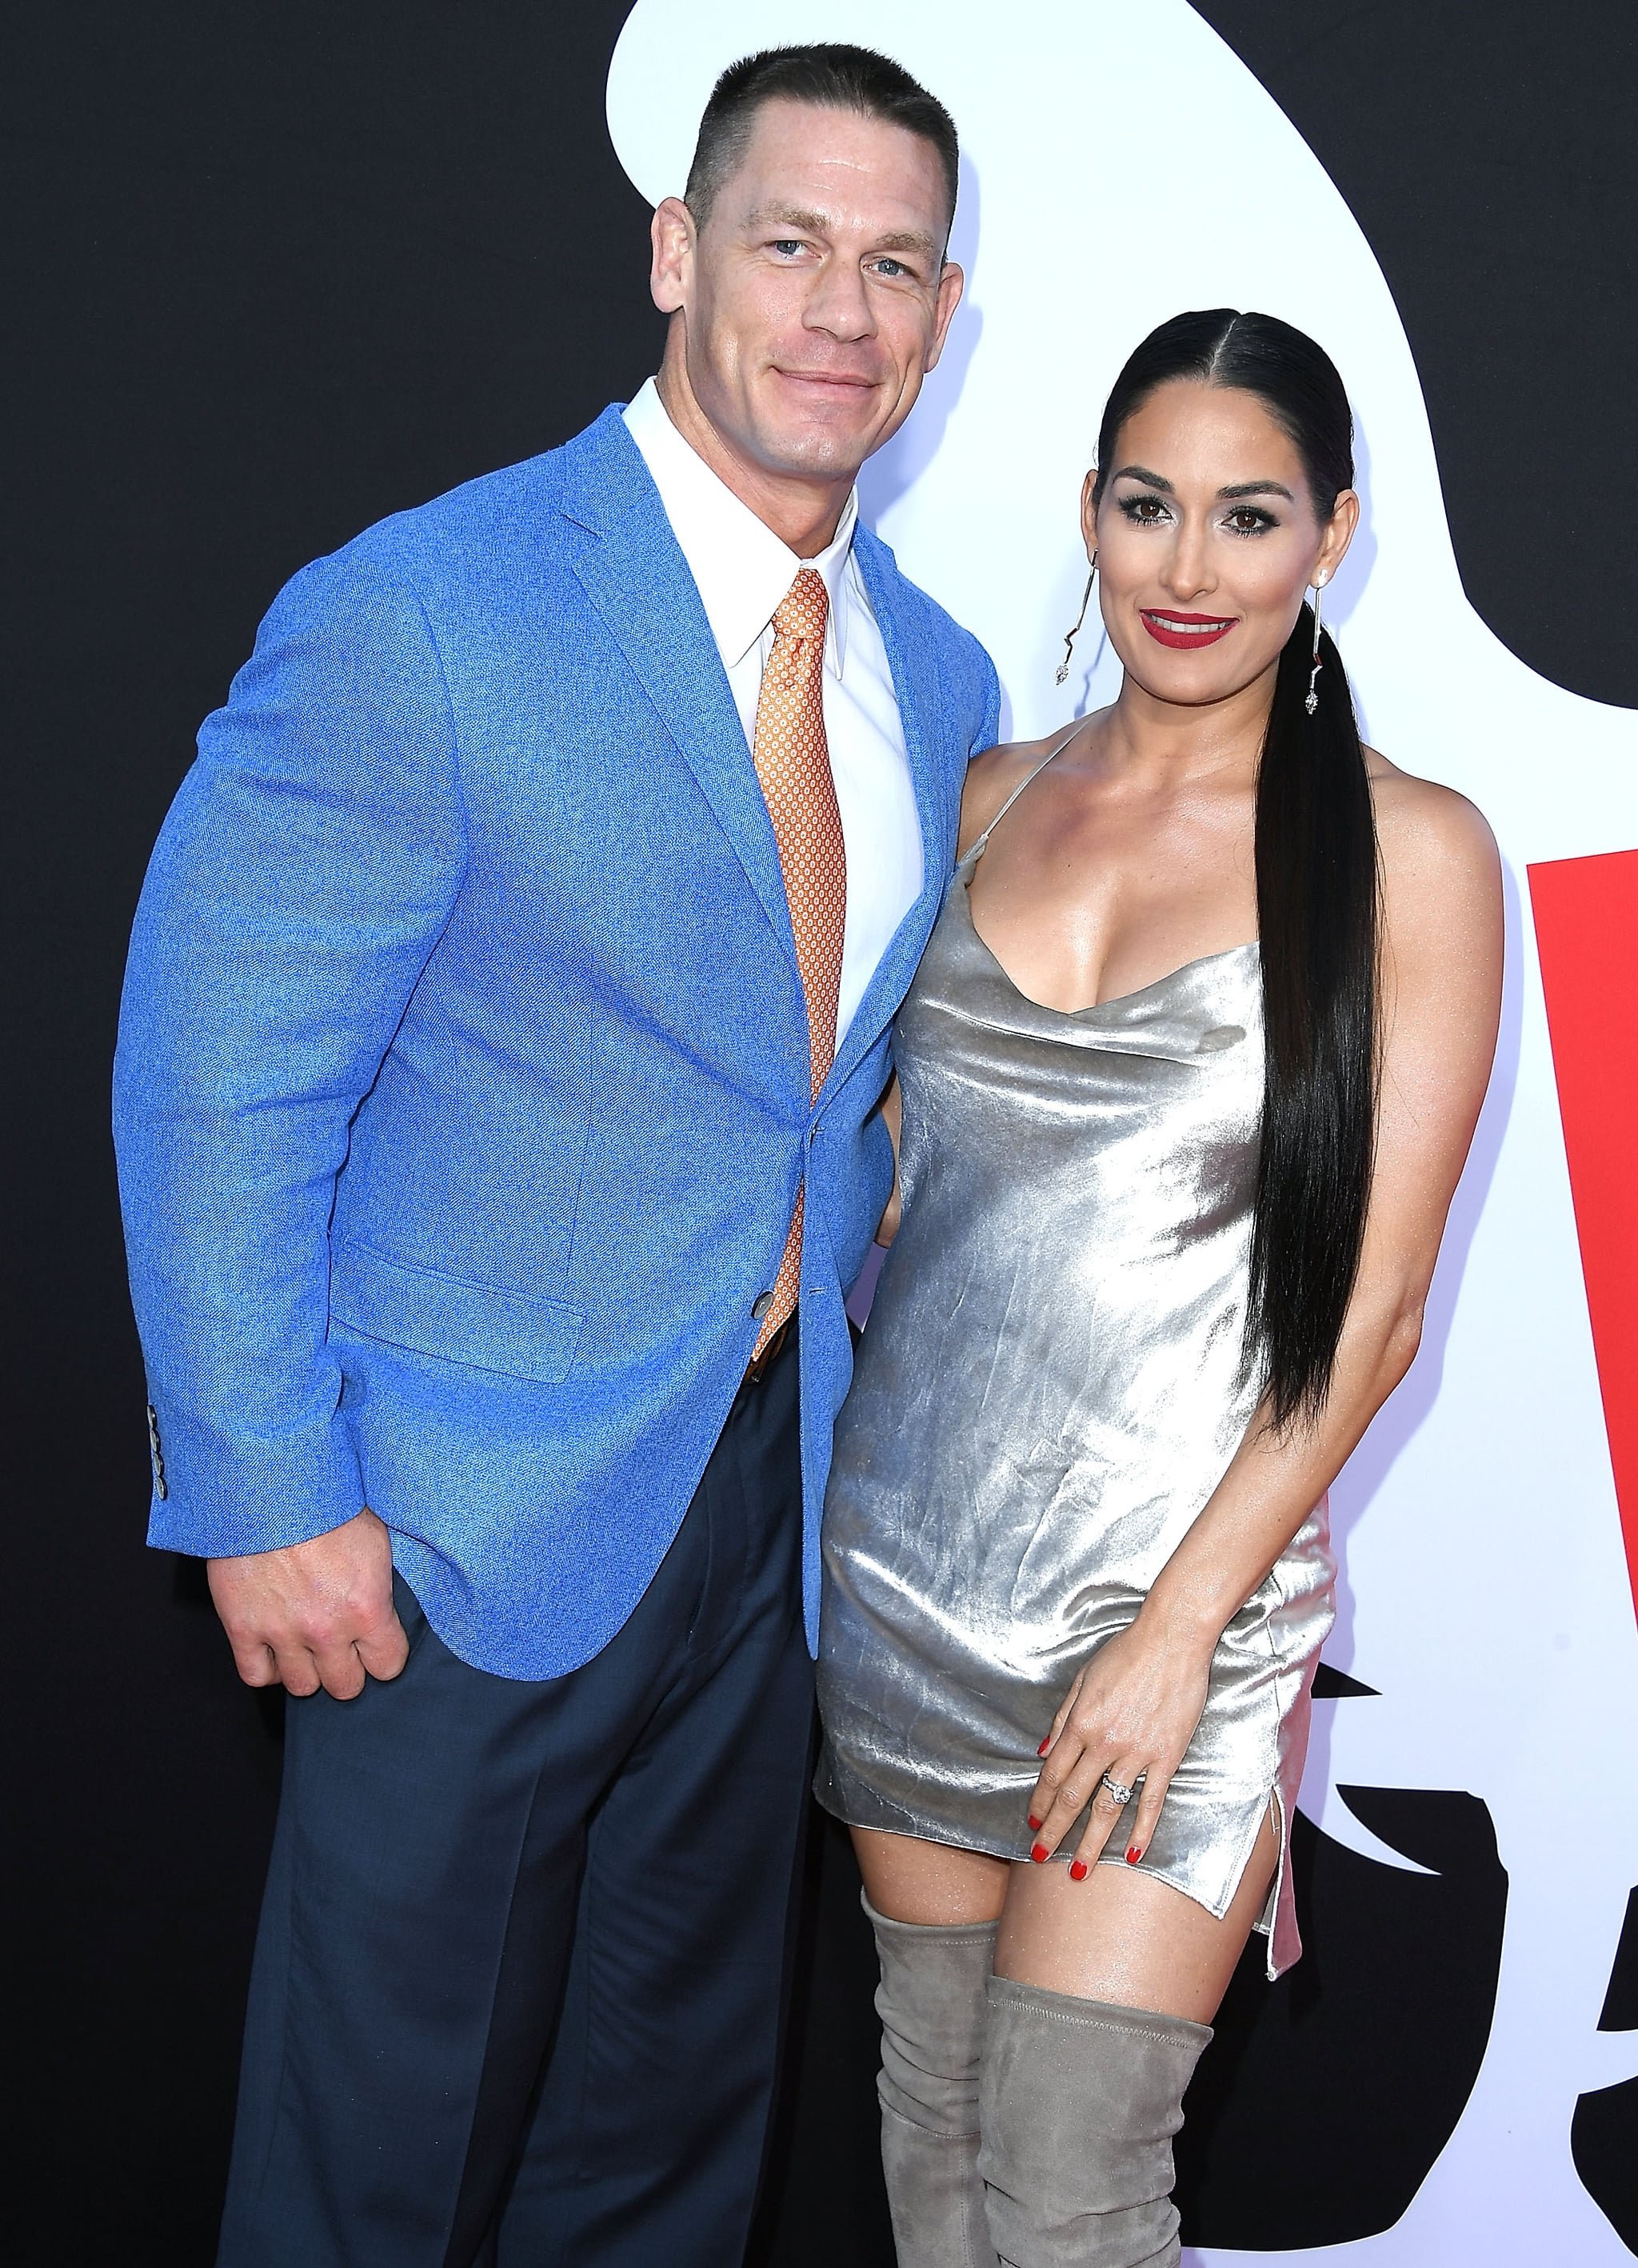 John cena and nikki bella spotted together after break up popsugar westwood ca april 03 john cena nikki bella arrives at the universal m4hsunfo